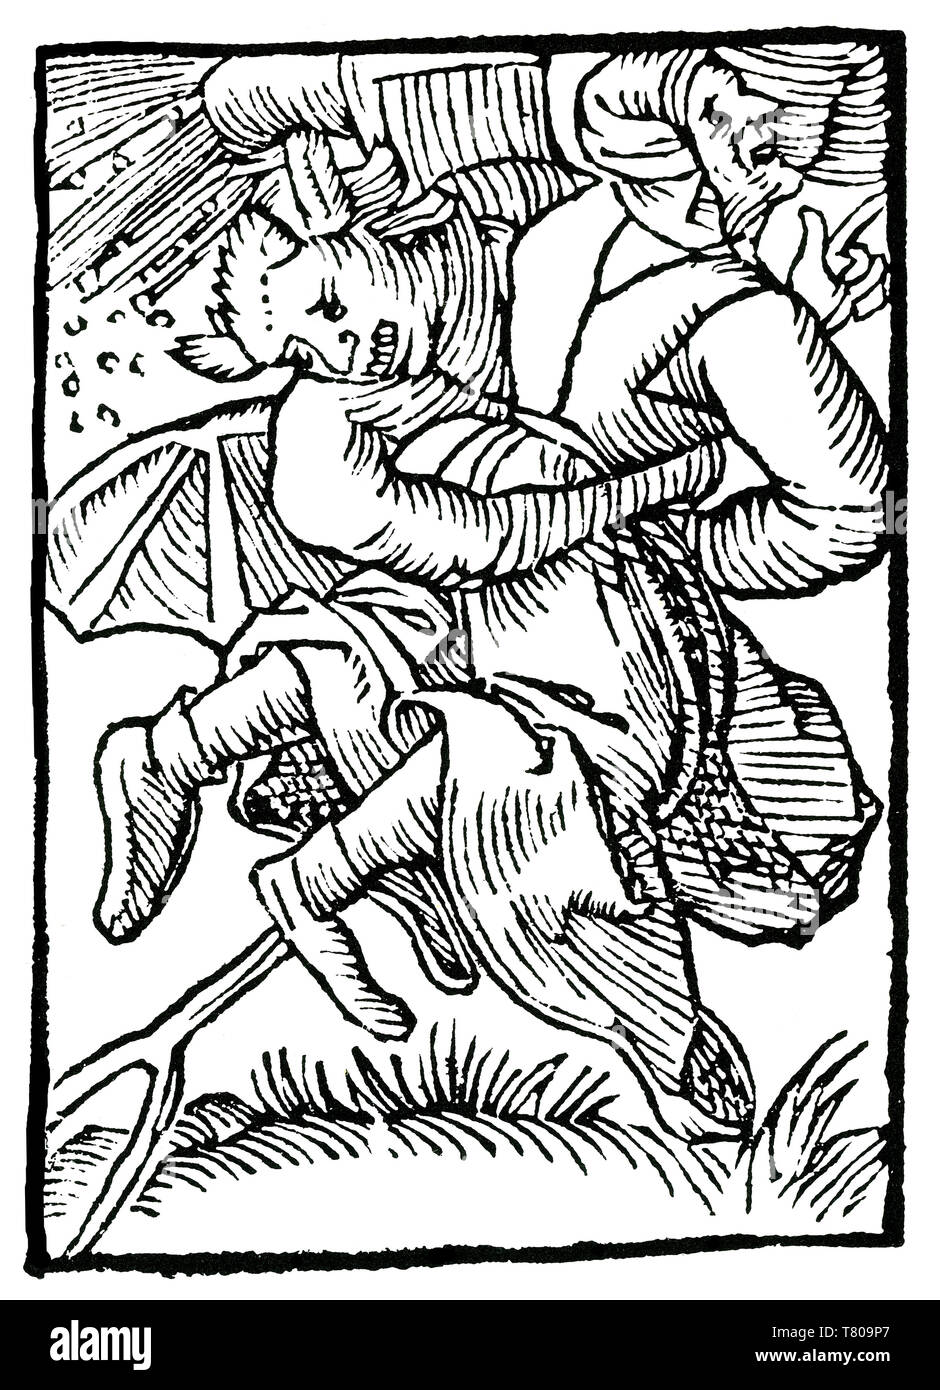 Satan and Witch Riding Pitchfork, 1489 - Stock Image